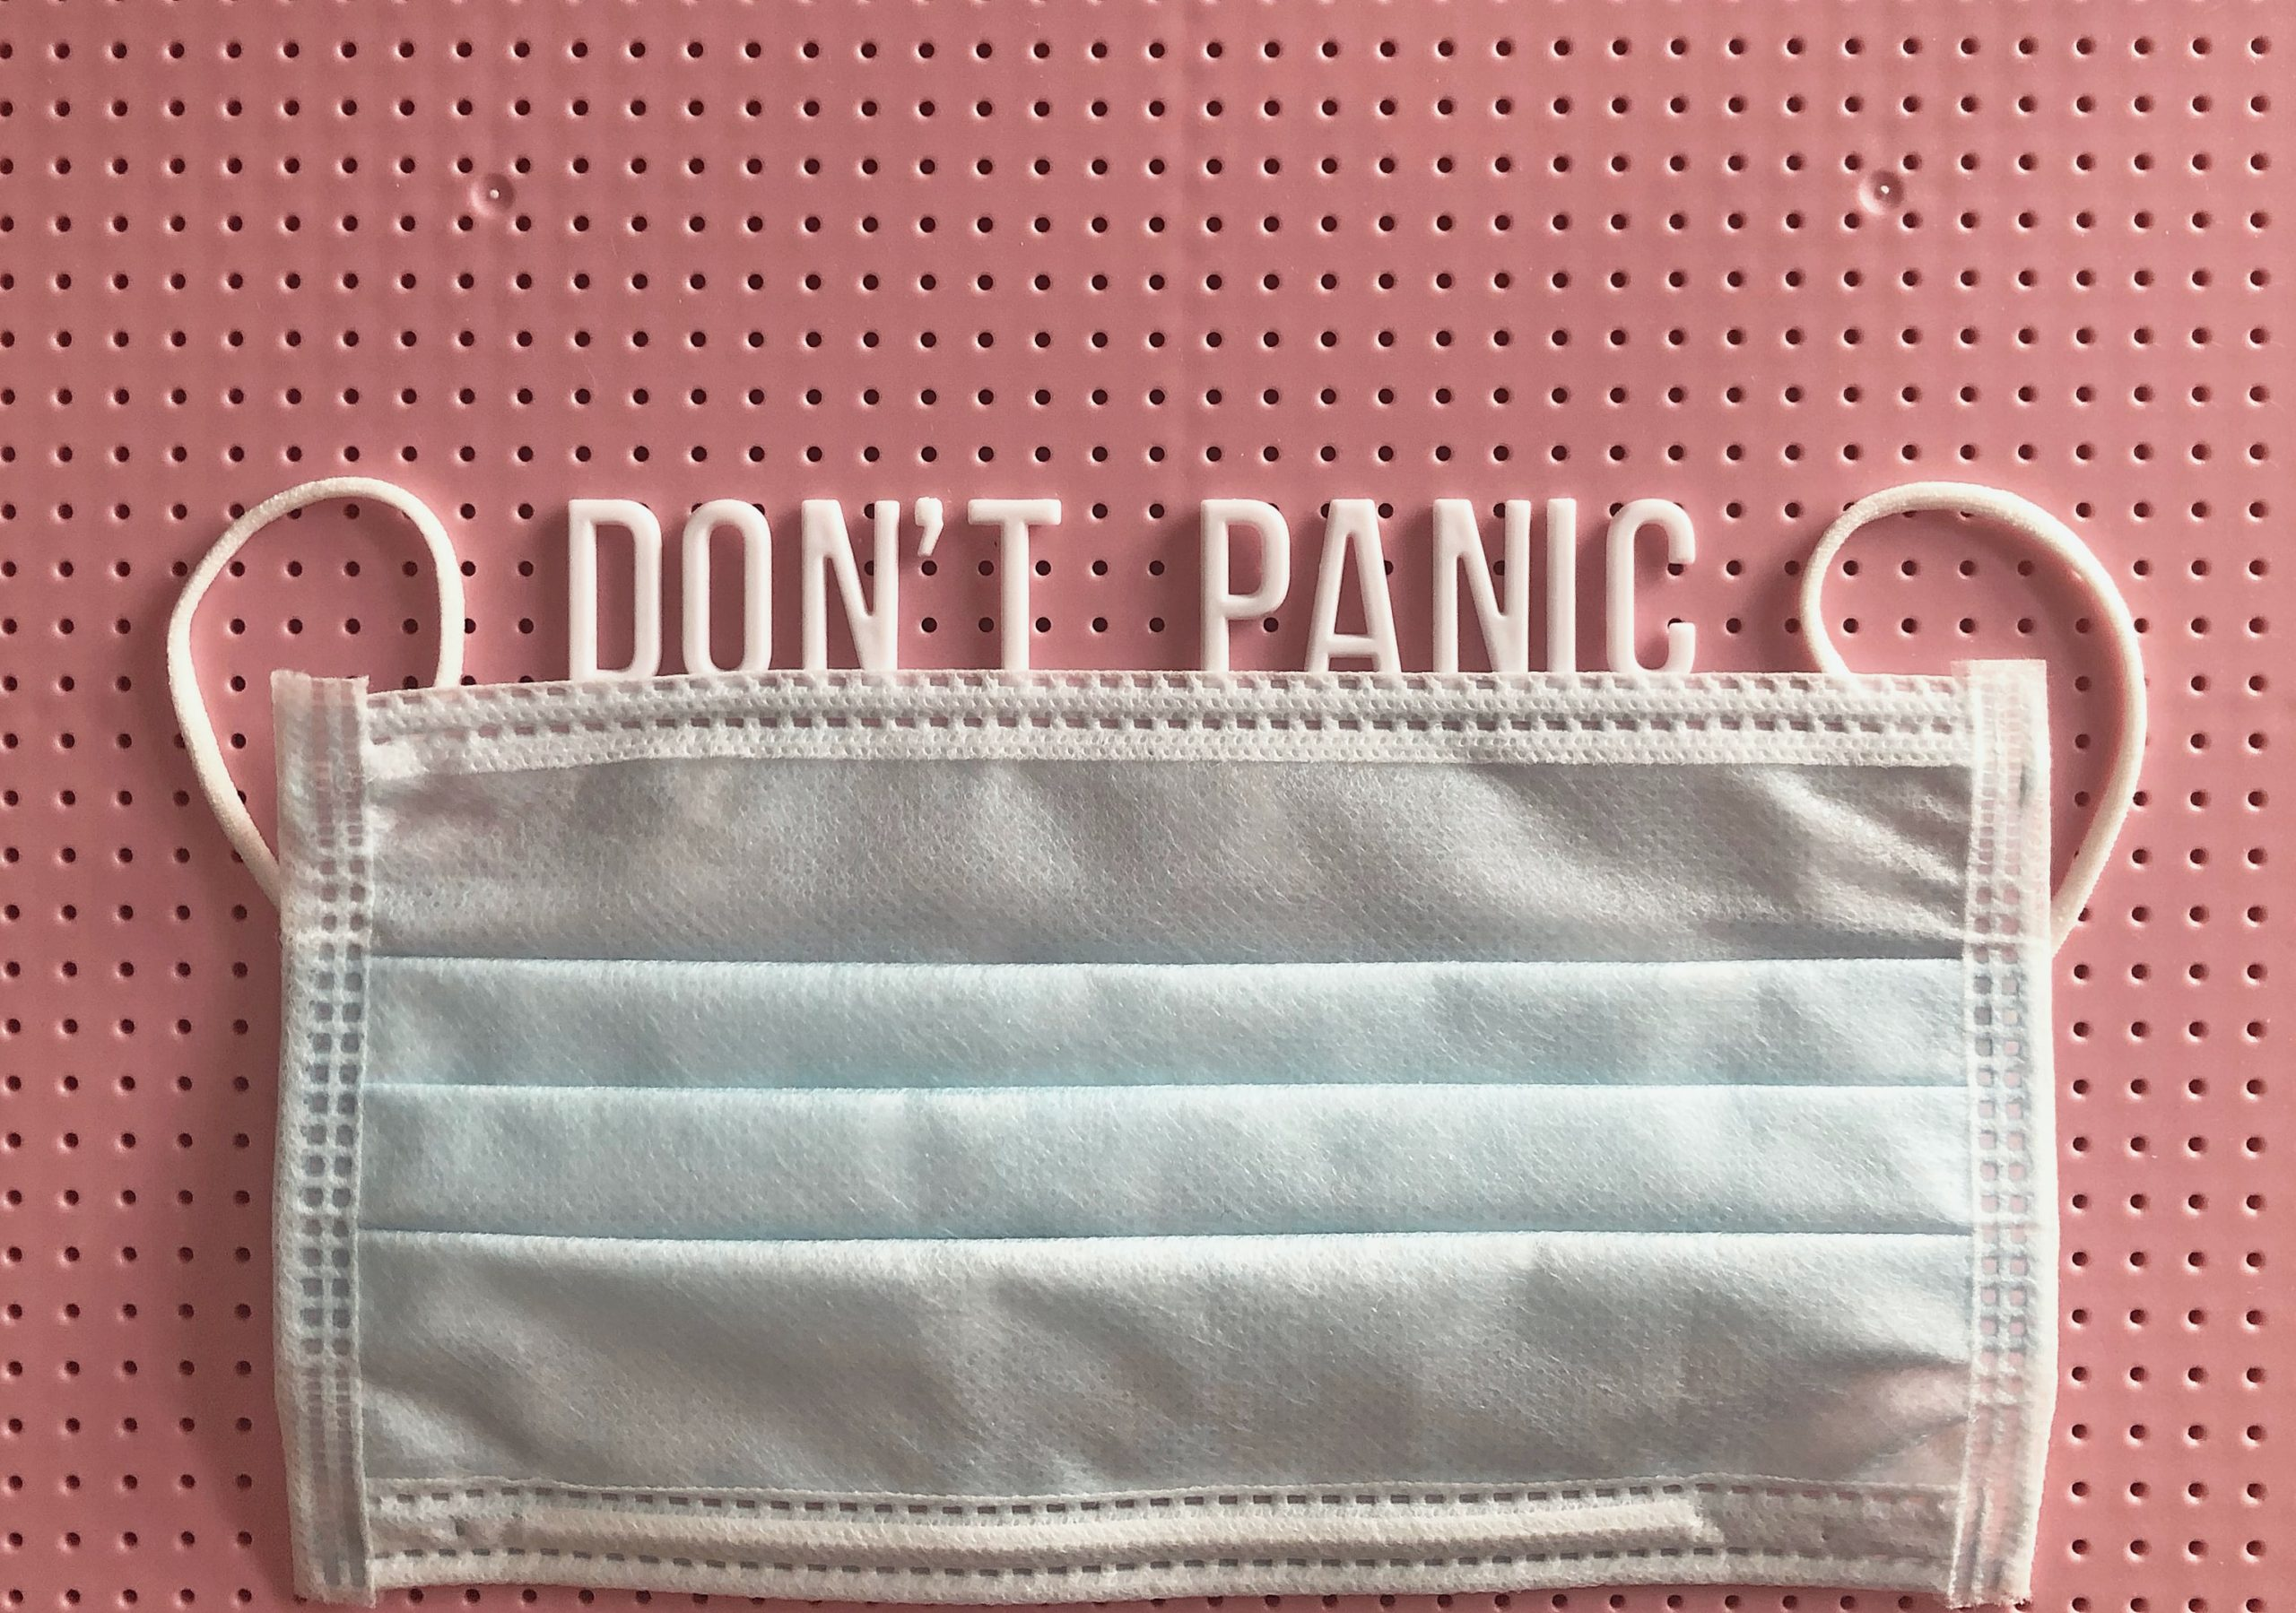 Mask with don't panic sign